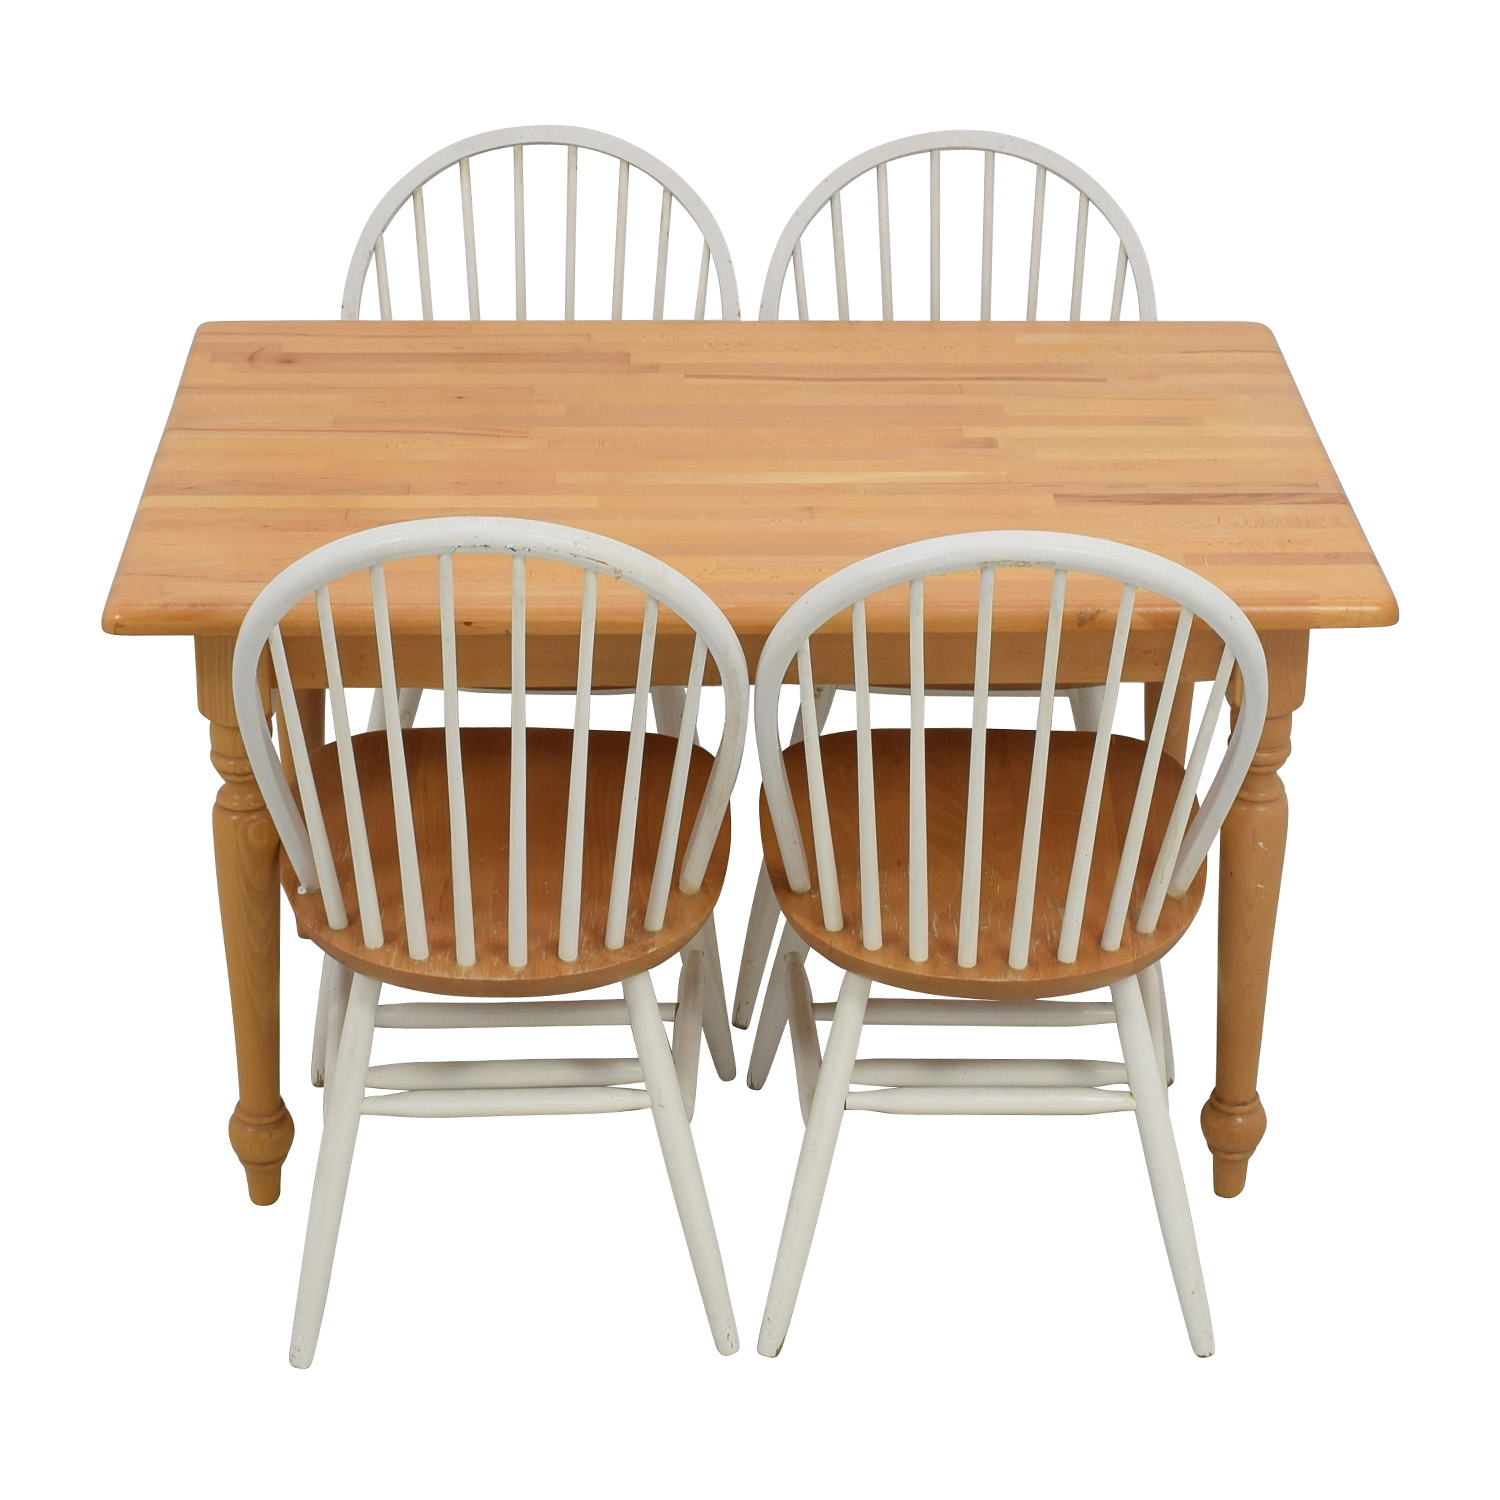 Butcher Block Kitchen Table and Four Chairs price